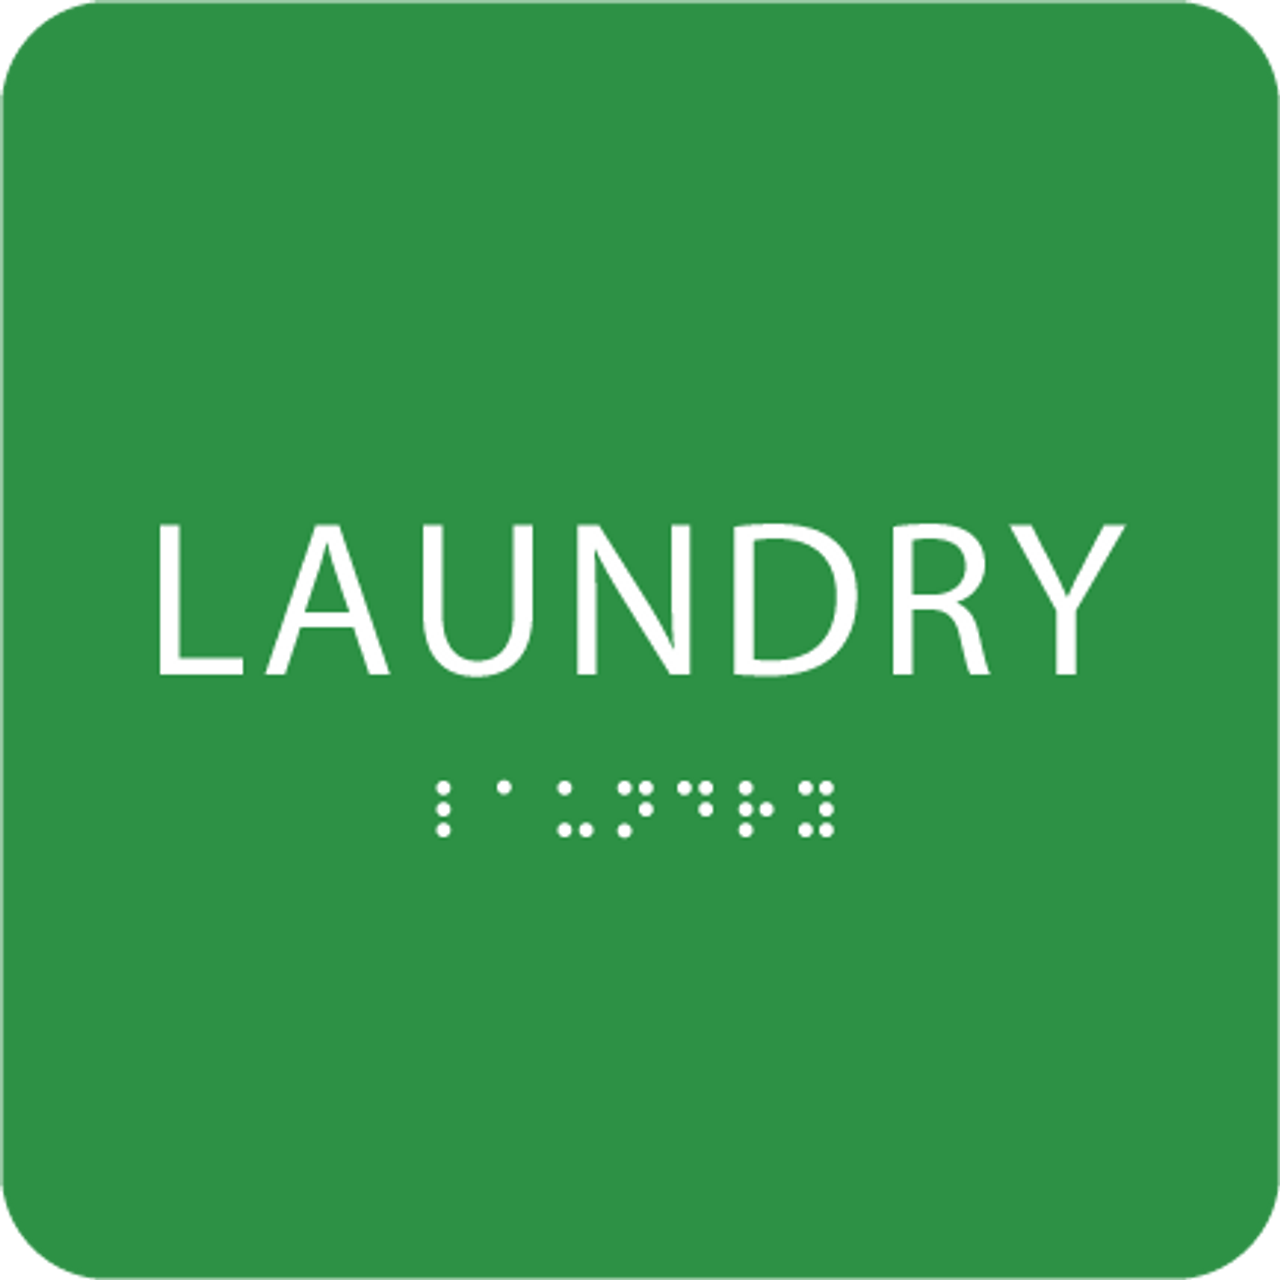 Green Laundry Braille Sign